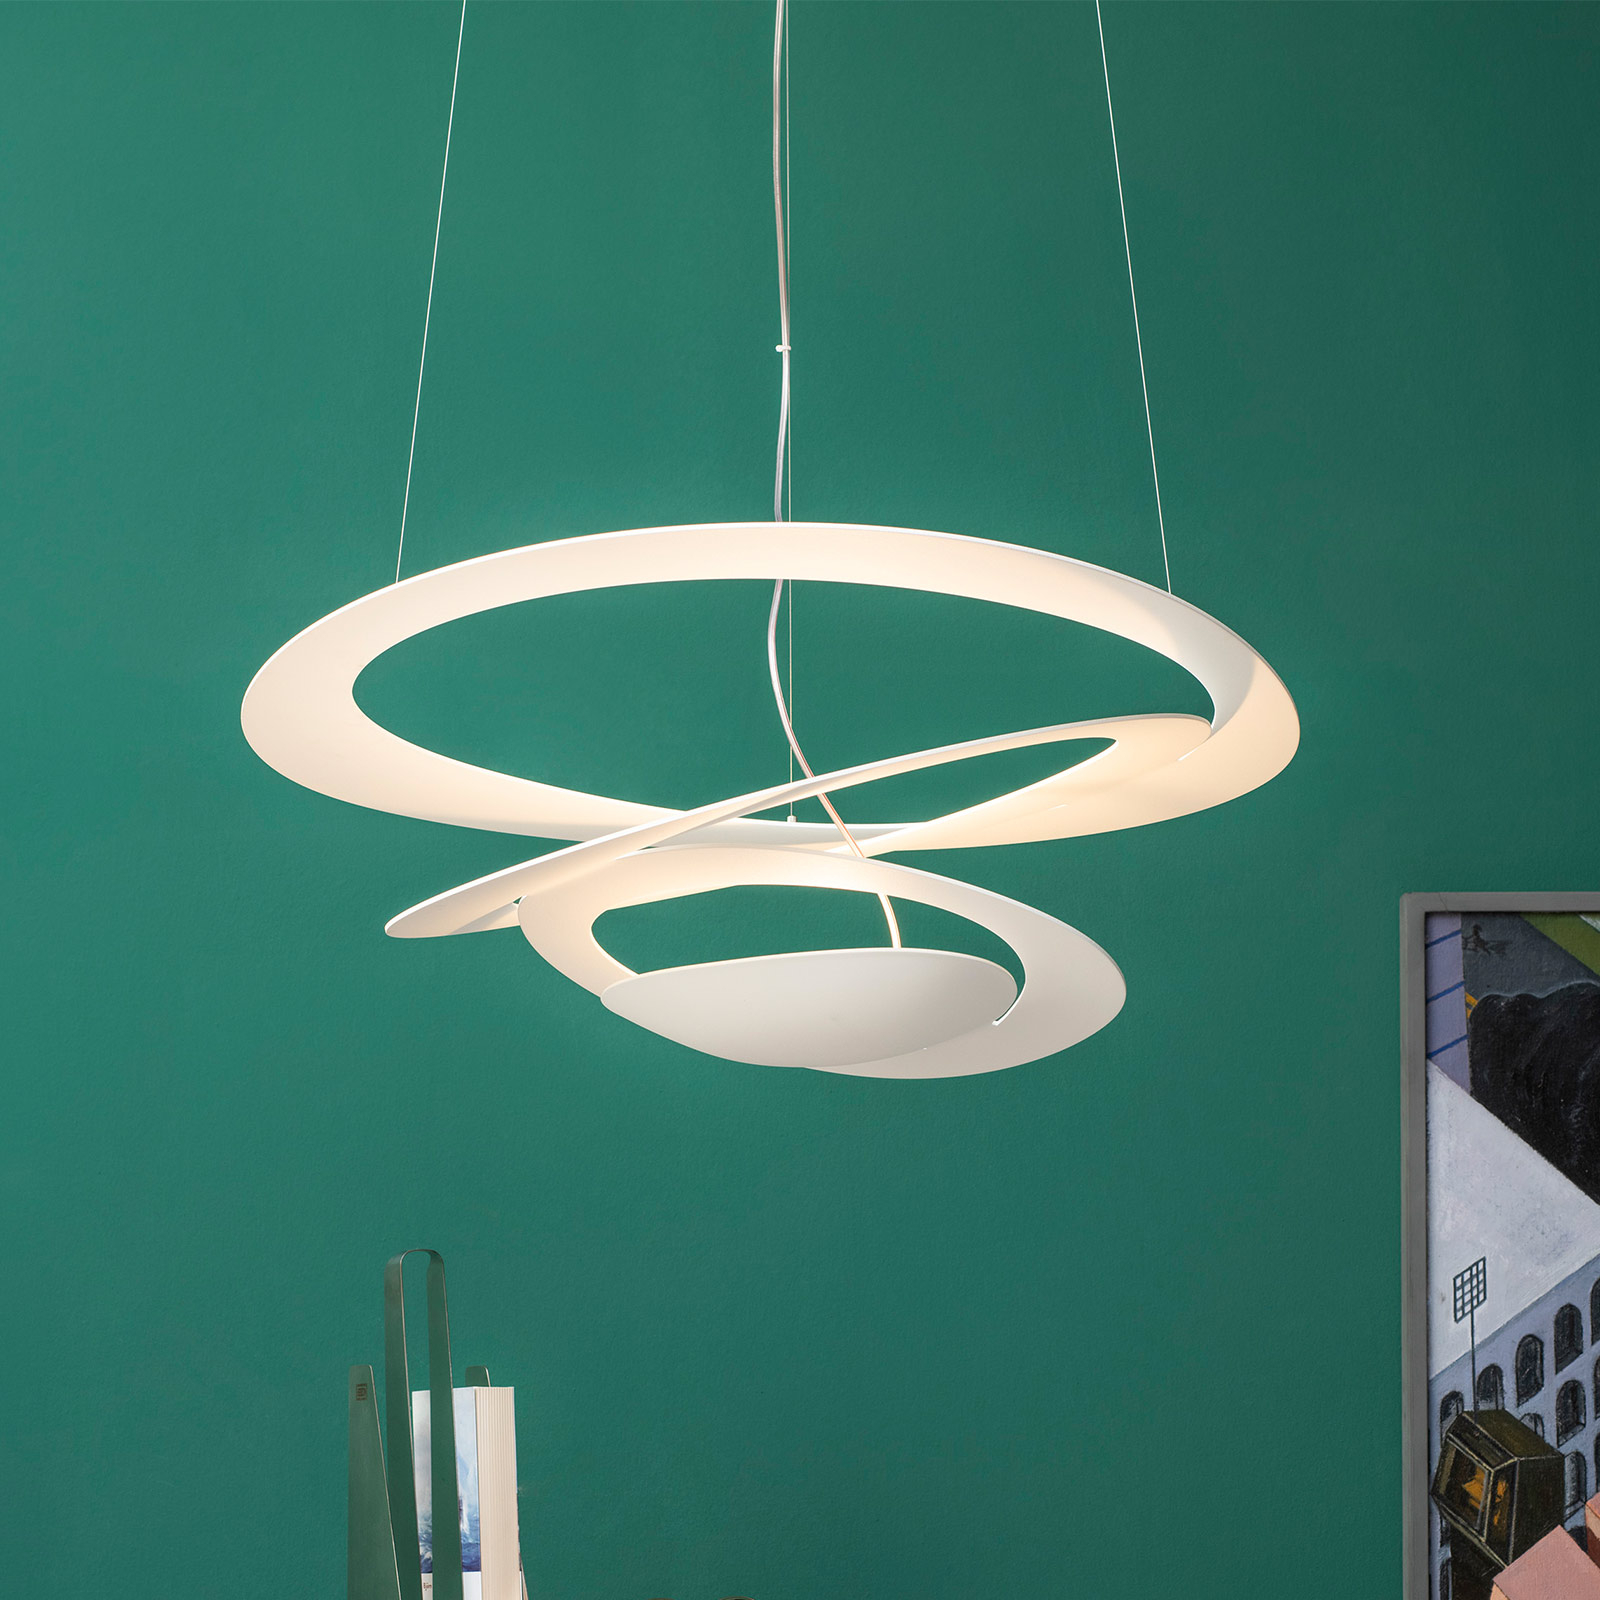 Suspension LED de designer Pirce Micro en blanc